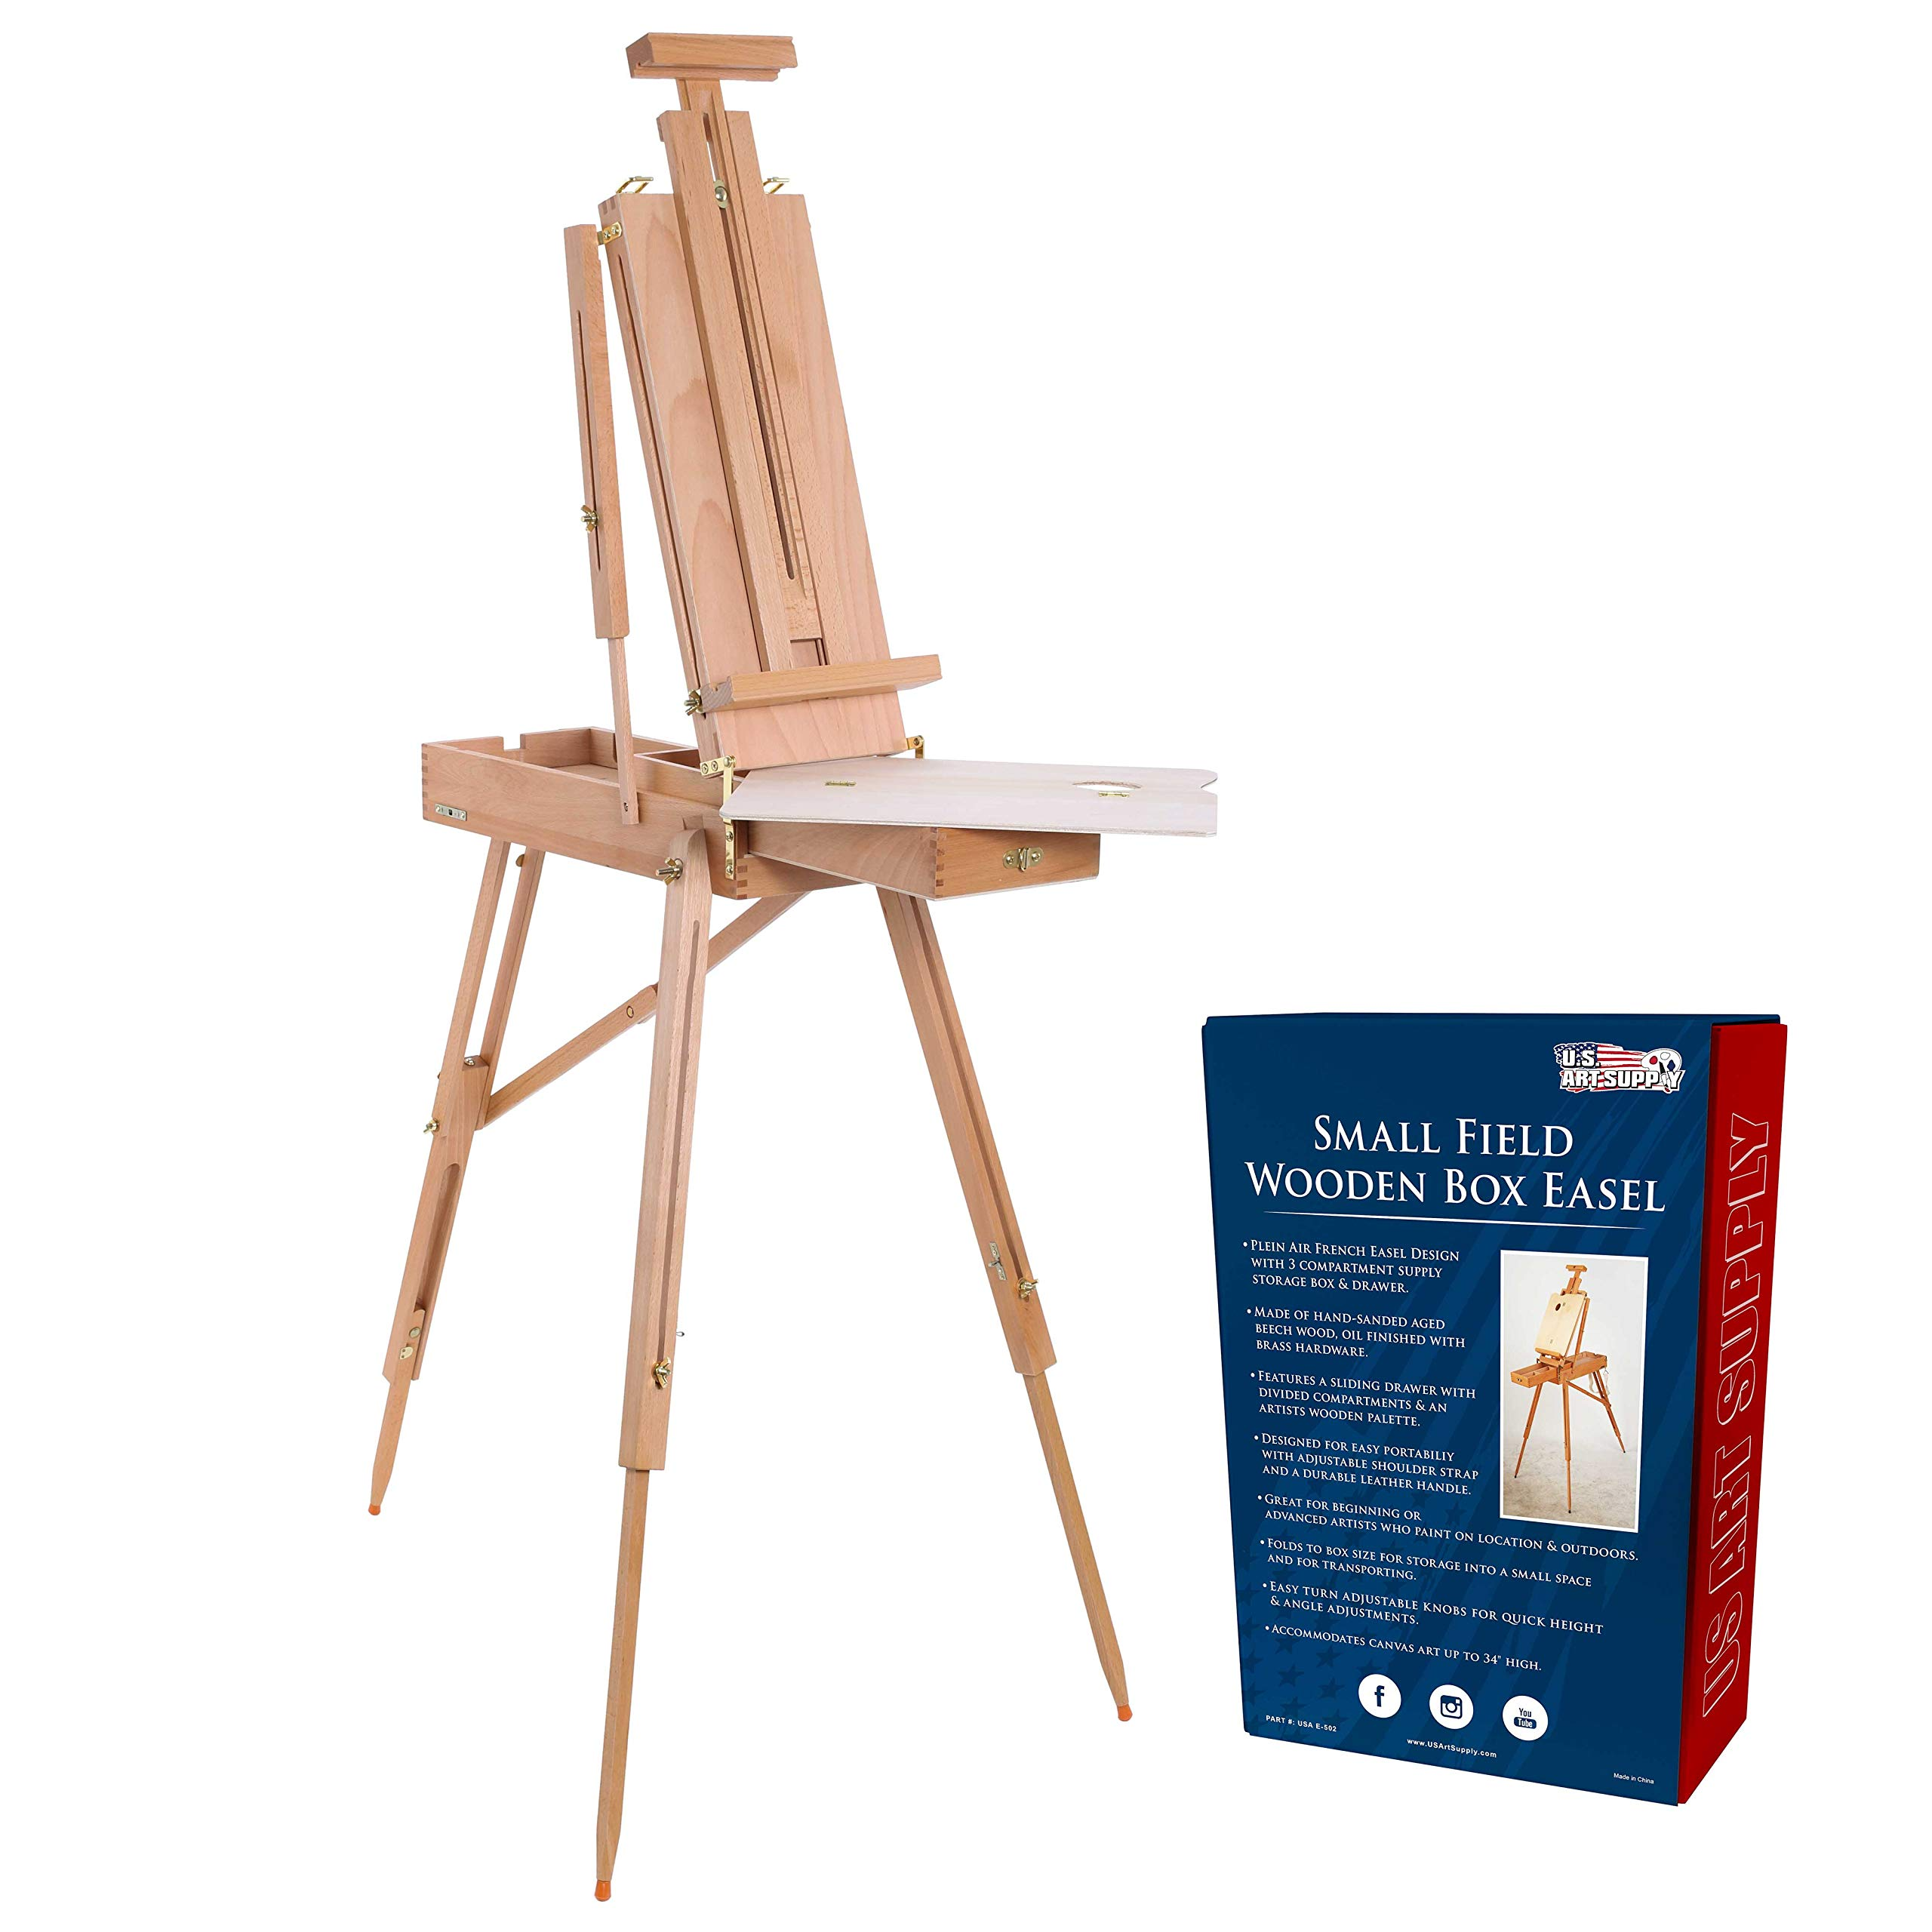 U.S. Art Supply Coronado Small Box Wooden French Style Field and Studio Sketchbox Easel with Drawer, Beechwood, Artist Palette - Adjustable Wood Tripod Easel Stand, Painting, Sketching, Canvas Display